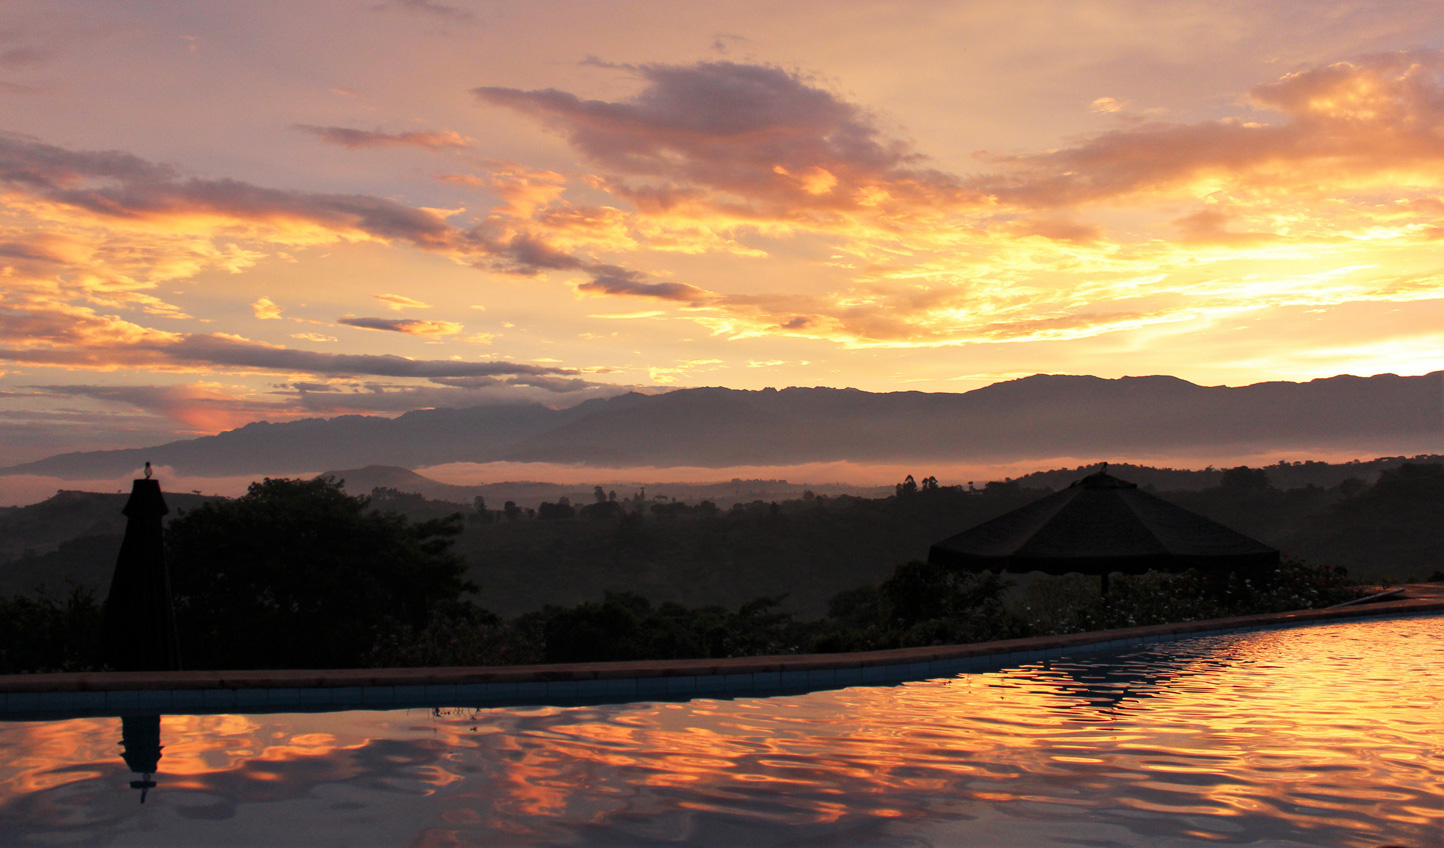 Watch the sun dip down over the never-ending landscapes from the comfort of the infinity pool